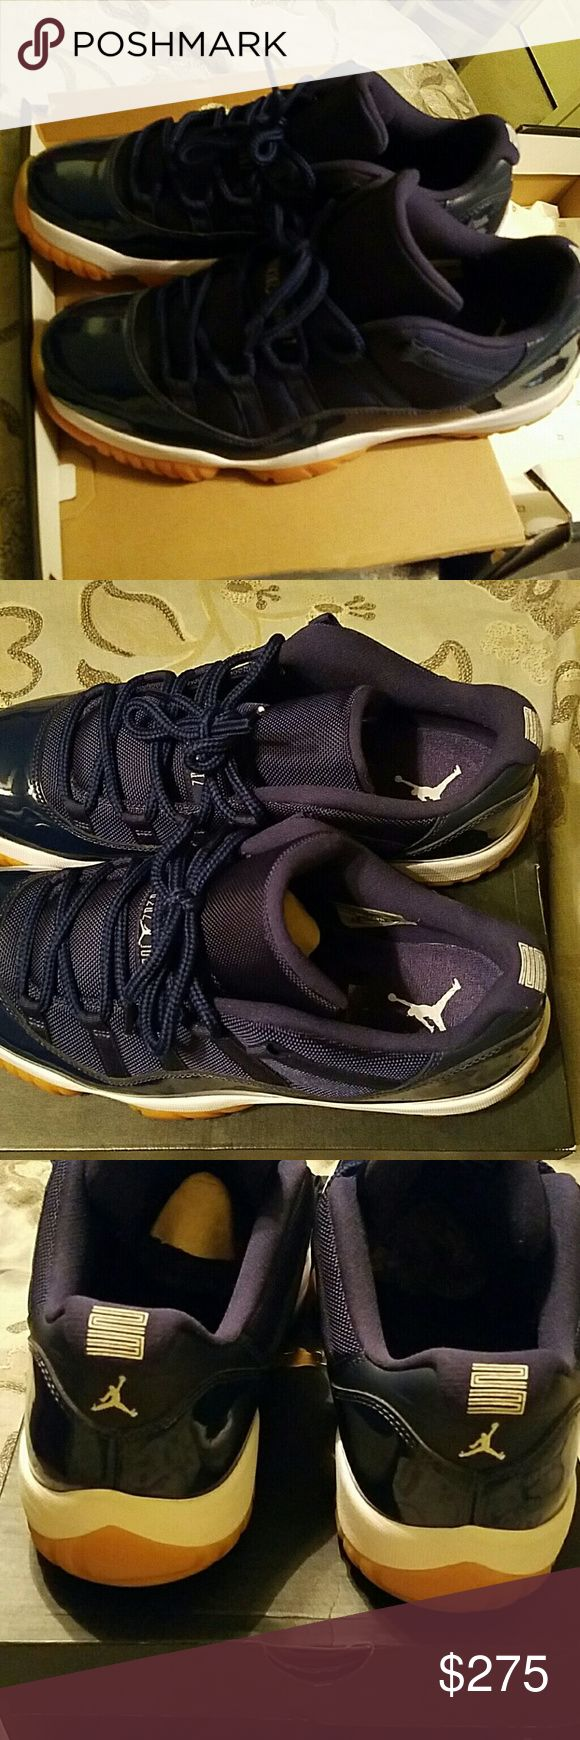 JORDAN LOWS 🏁MAKE OFFER🏁 Blue gum bottoms. Excellent condition. Worn only a few times. Maybe three times worn. Moving and need gone. Check other post. Need gone also....moving! My son corrected me!!!lol!  ●♢●♢USE OFFER BUTTON♢●♢● Shoes Athletic Shoes